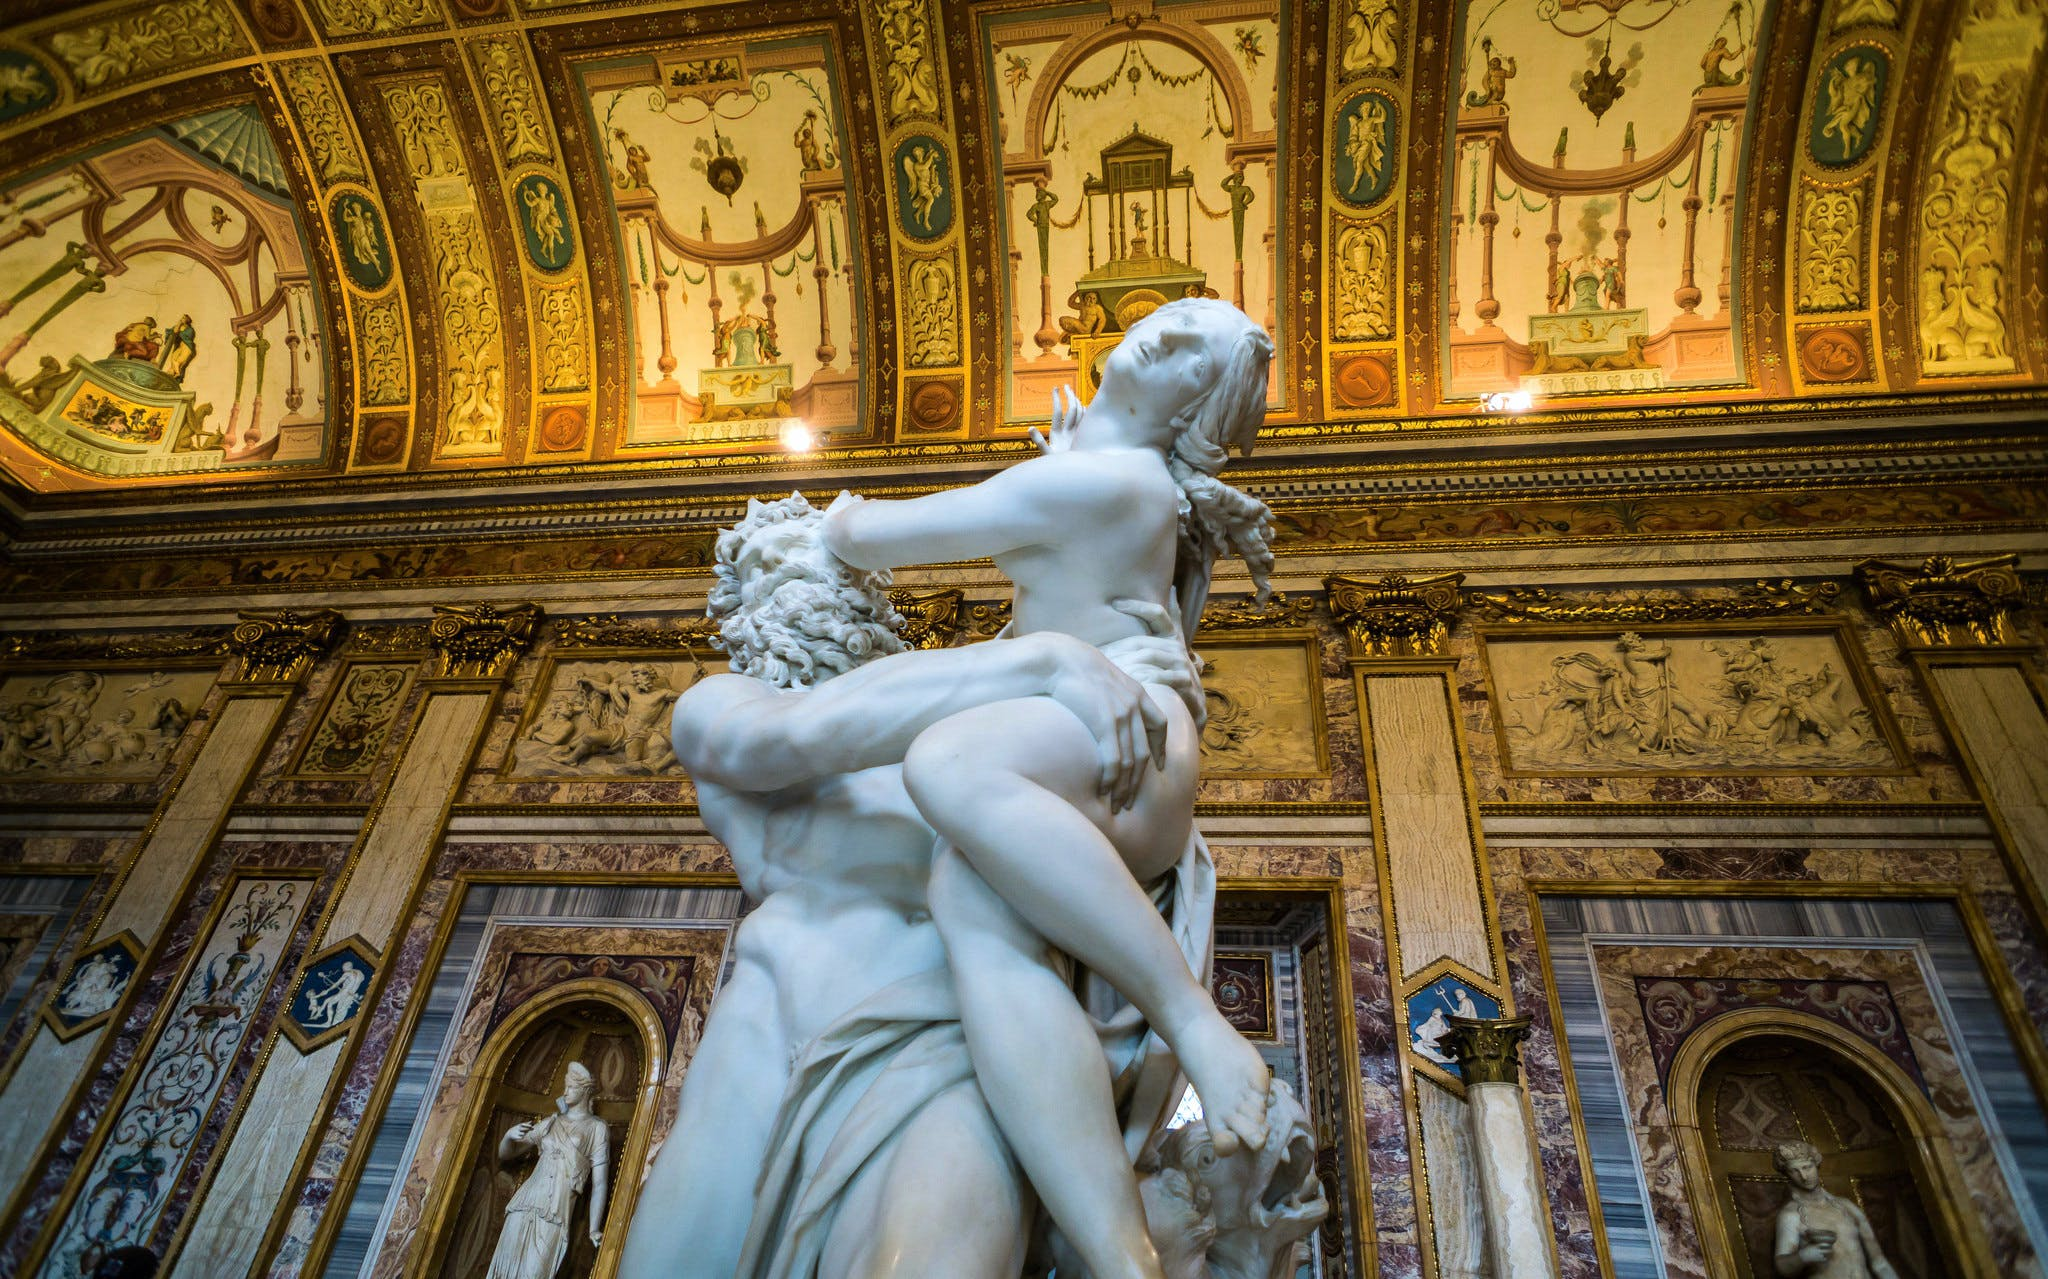 Borghese Gallery and Gardens Half Day Tour with Hotel Pickup